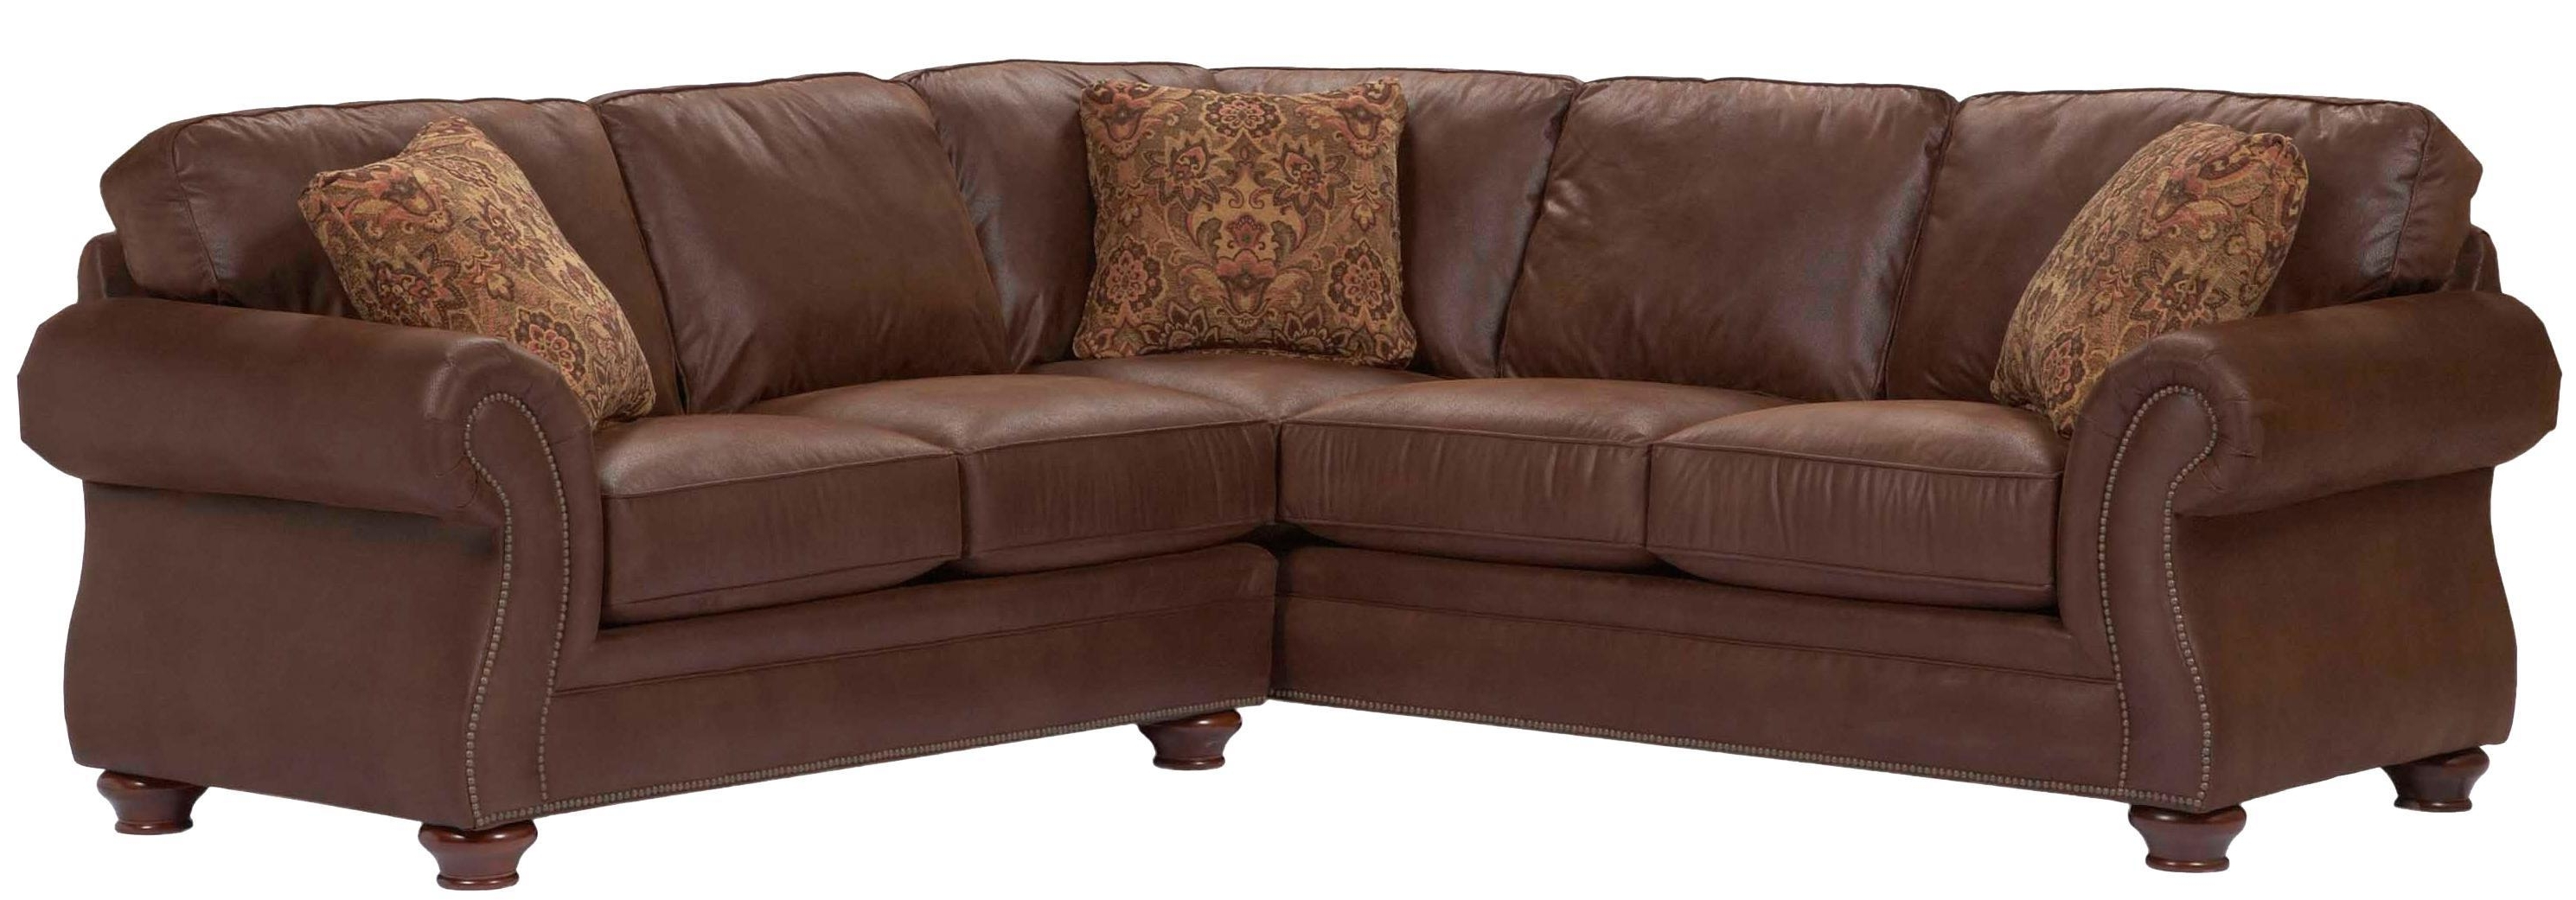 Latest Tuscaloosa Sectional Sofas With Broyhill Furniture Laramie 2 Piece Corner Sectional Sofa – Ahfa (View 6 of 20)